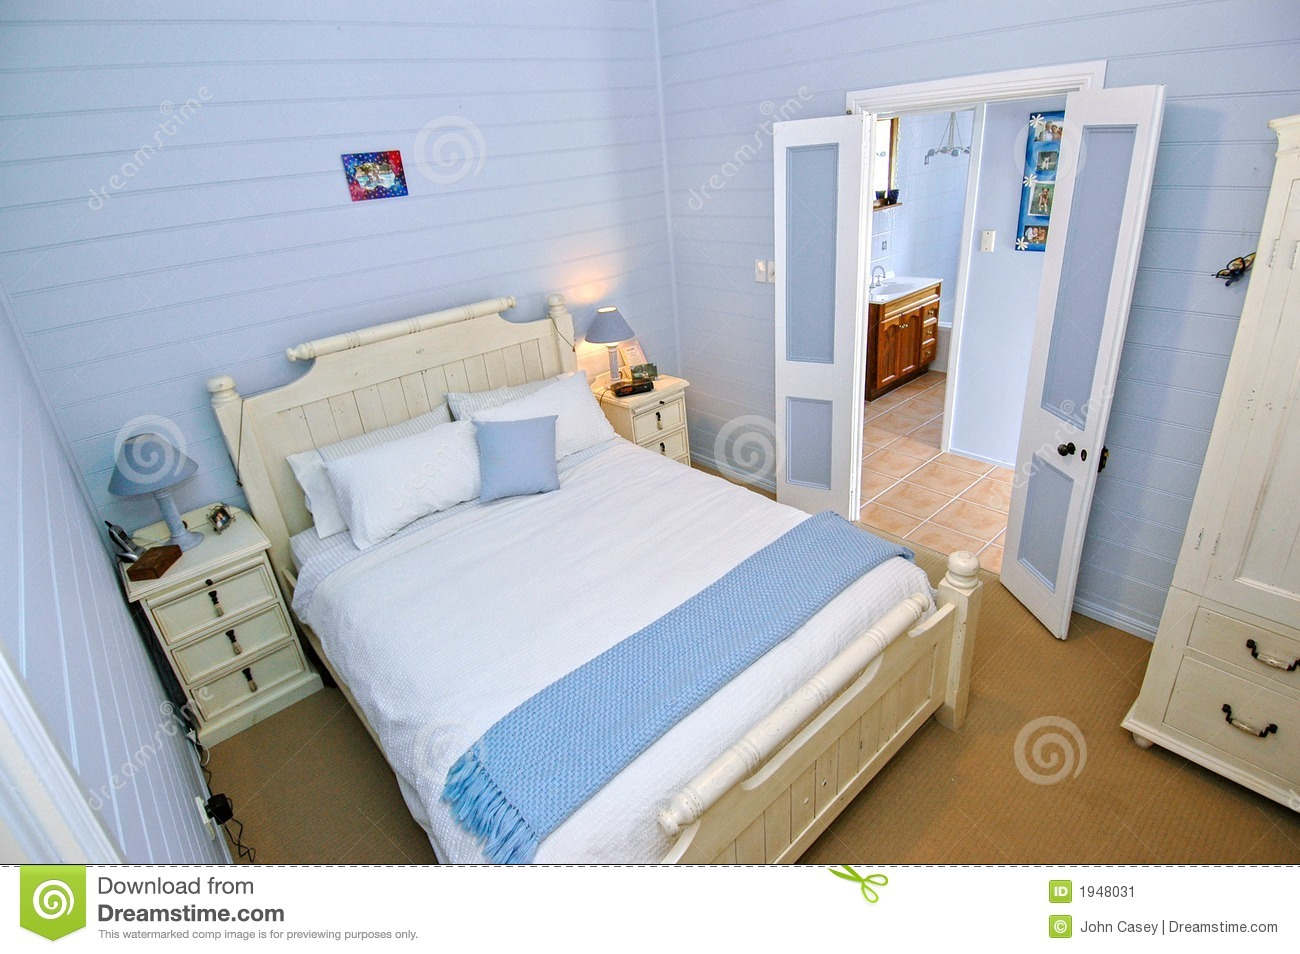 bedroom with light blue walls stock image image of decoration house 1948031. Black Bedroom Furniture Sets. Home Design Ideas